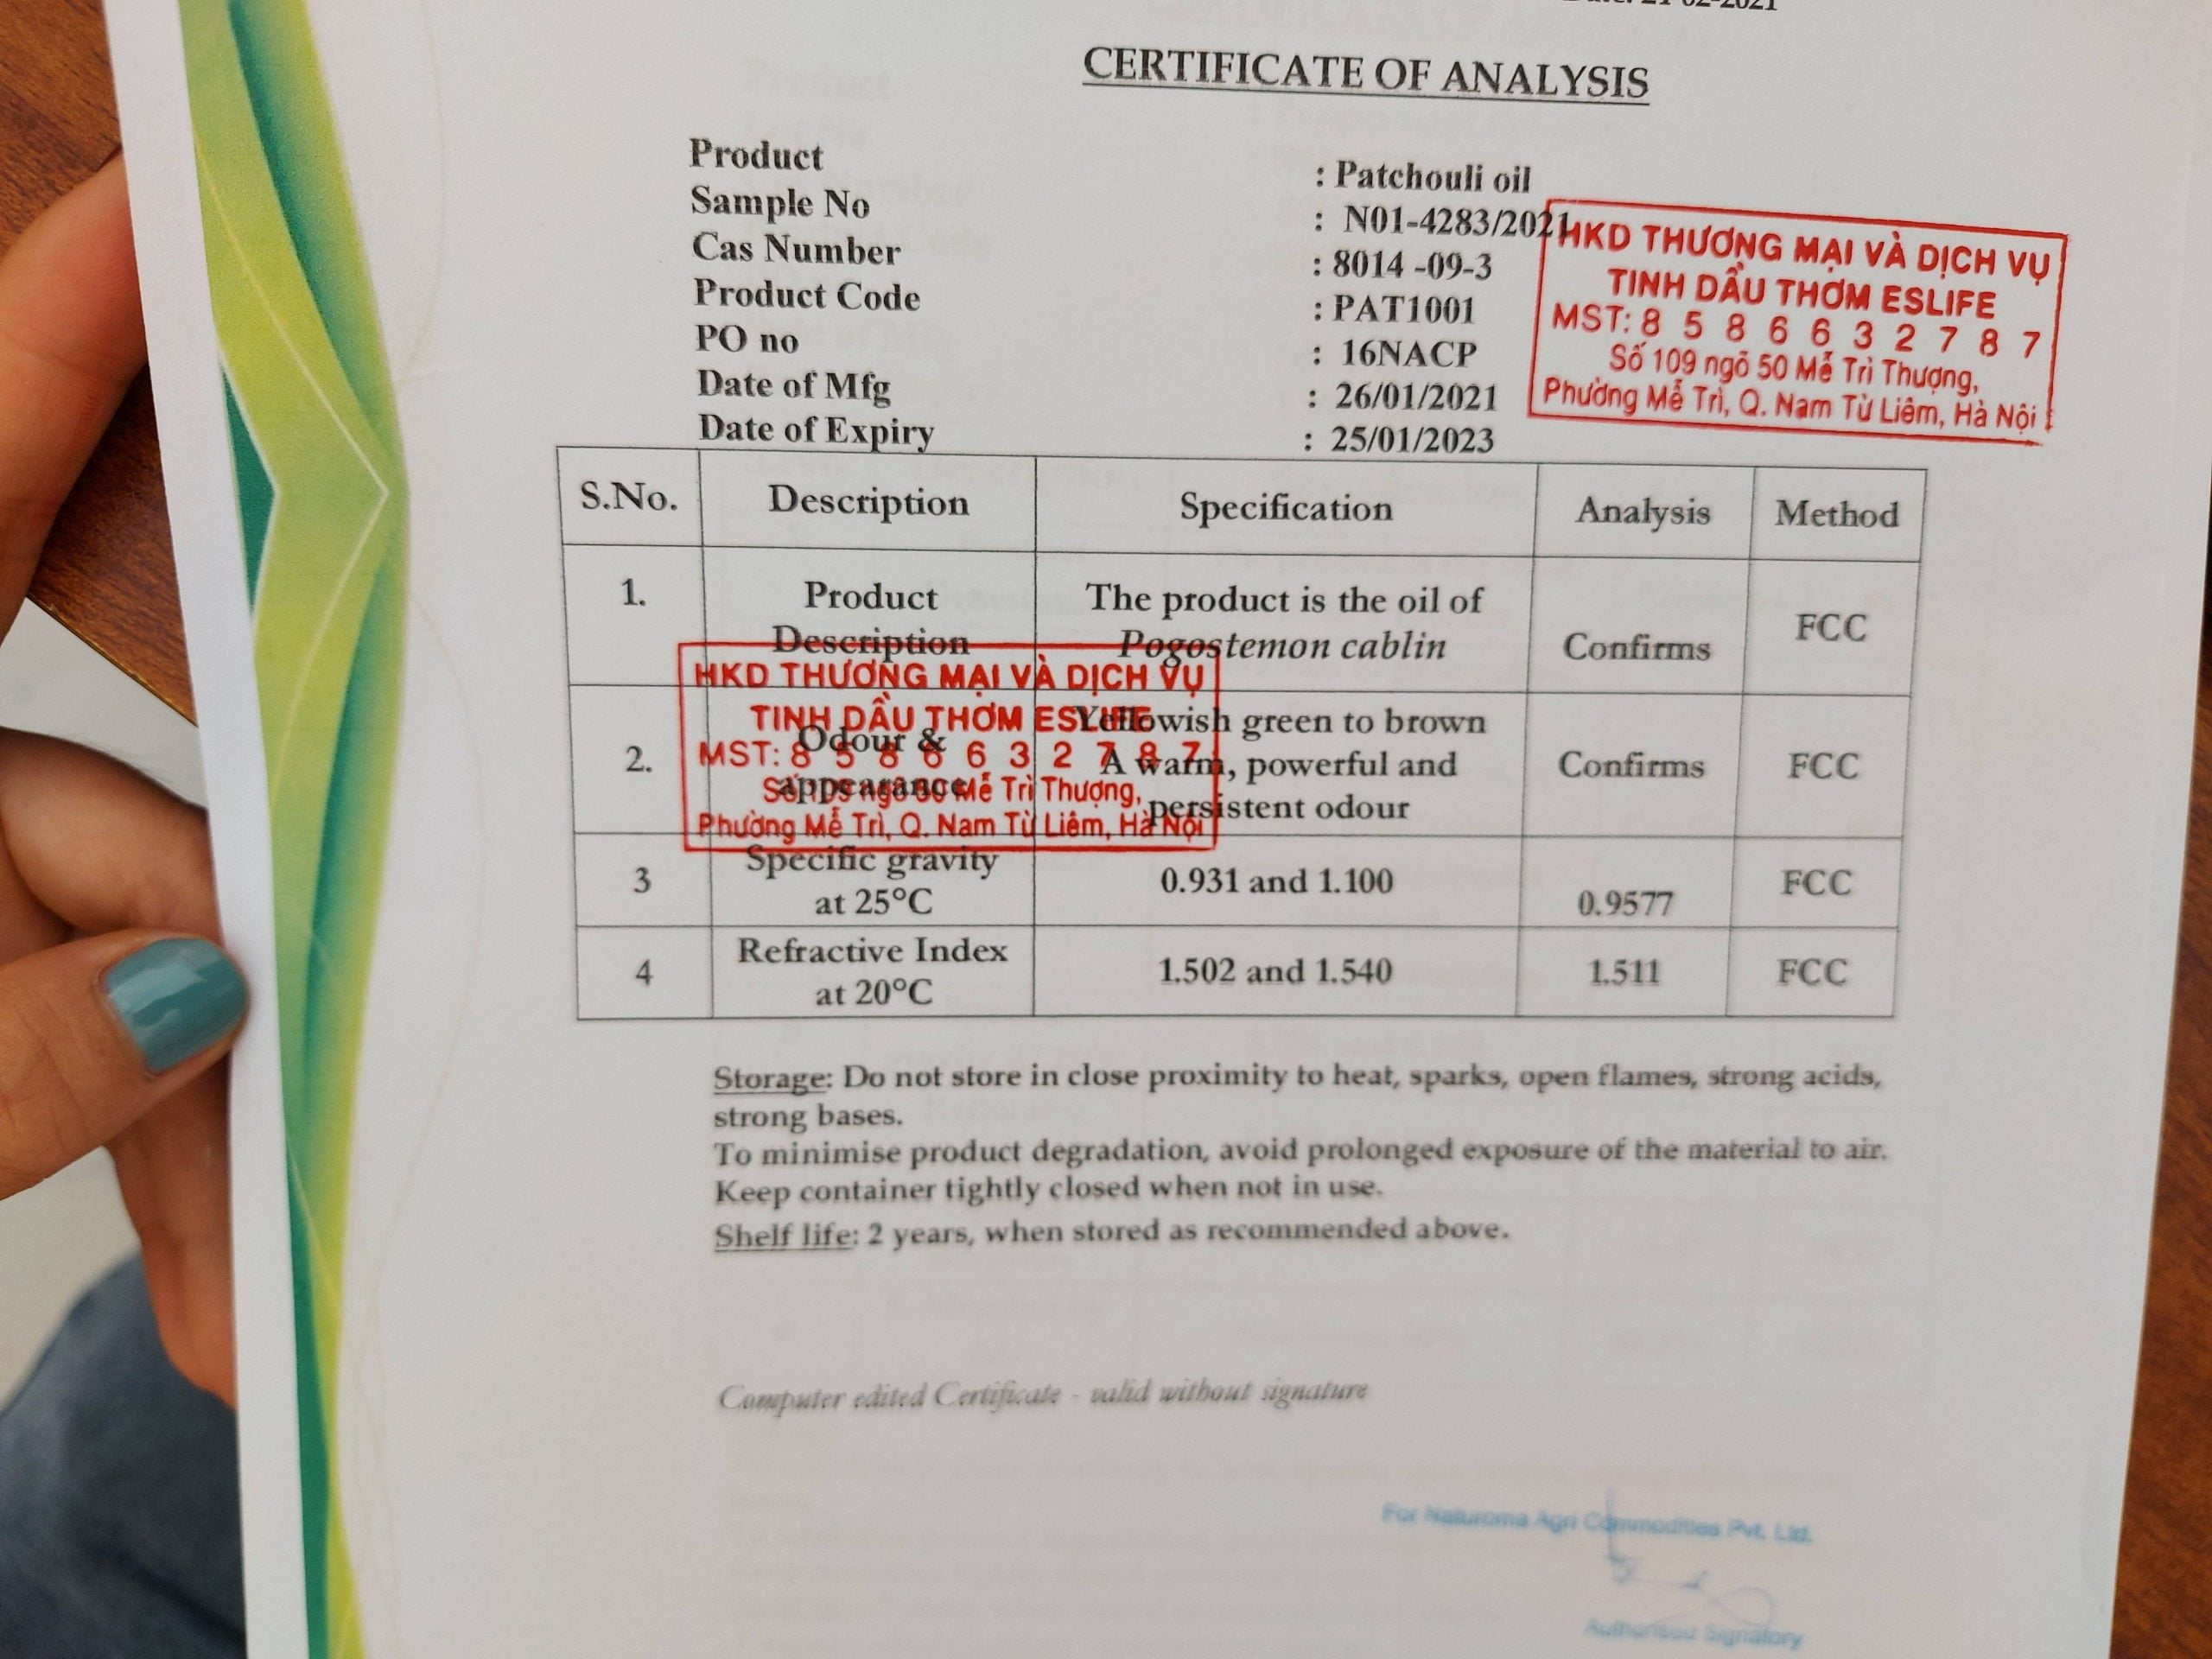 Phiếu kết quả thử nghiệm Tinh Dầu Hoắc Hương( test tinh dầu Tinh Dầu Hoắc Hương) ( coa ) Certificate of Analysis - Patchouli Essential Oil